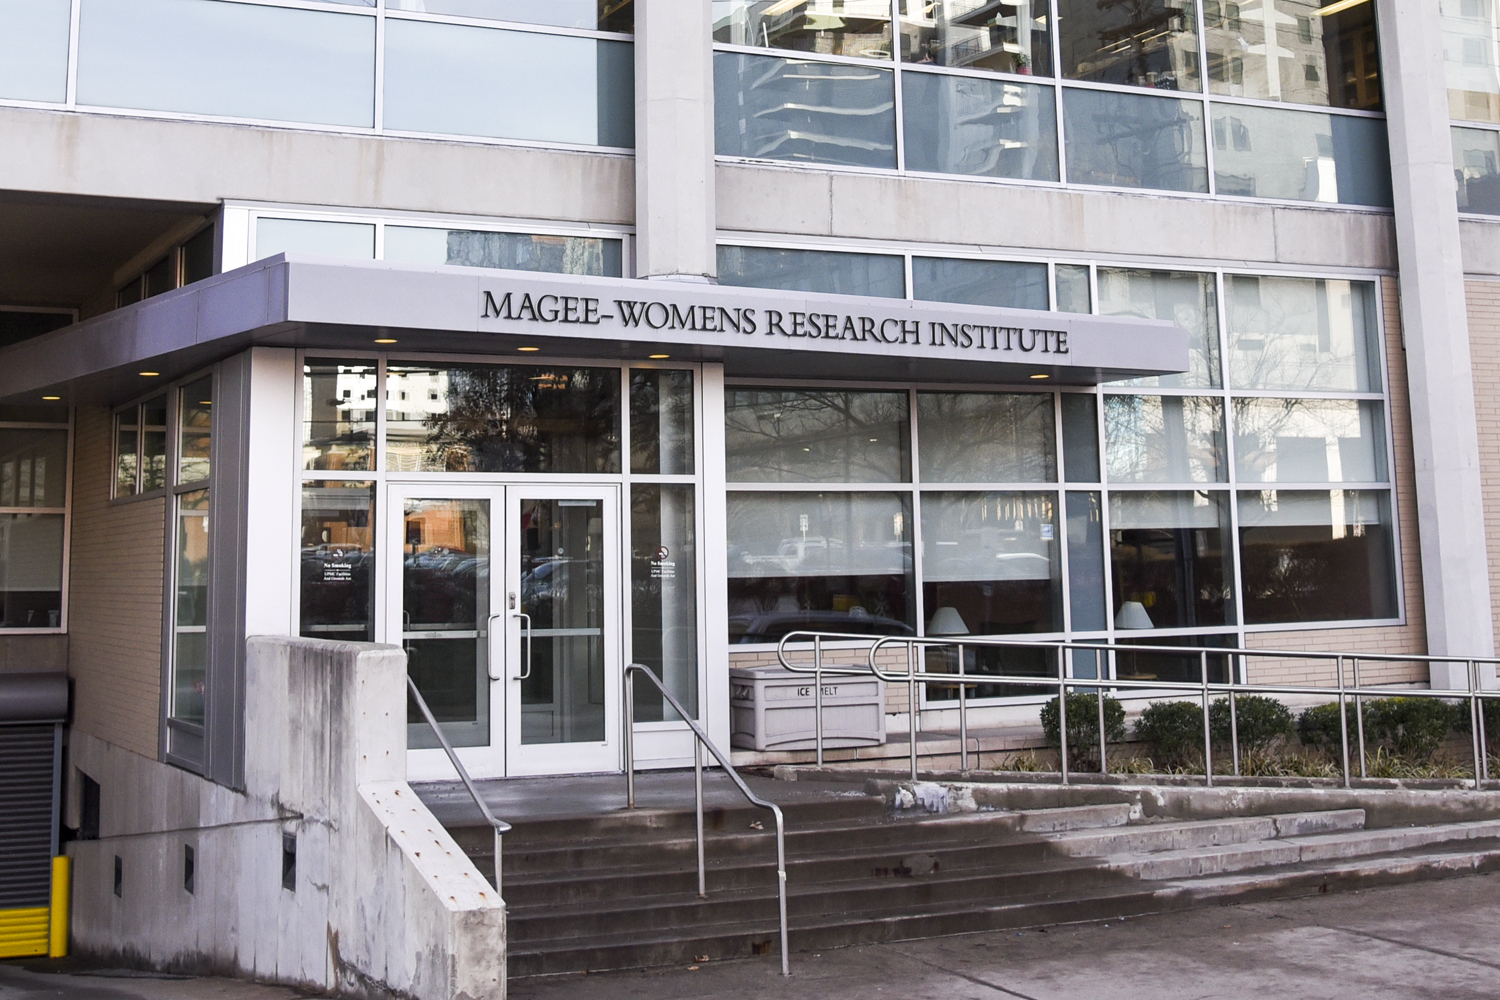 Magee-Womens Research Institute is the largest independent women's research institute in the country with a focus on women's health.